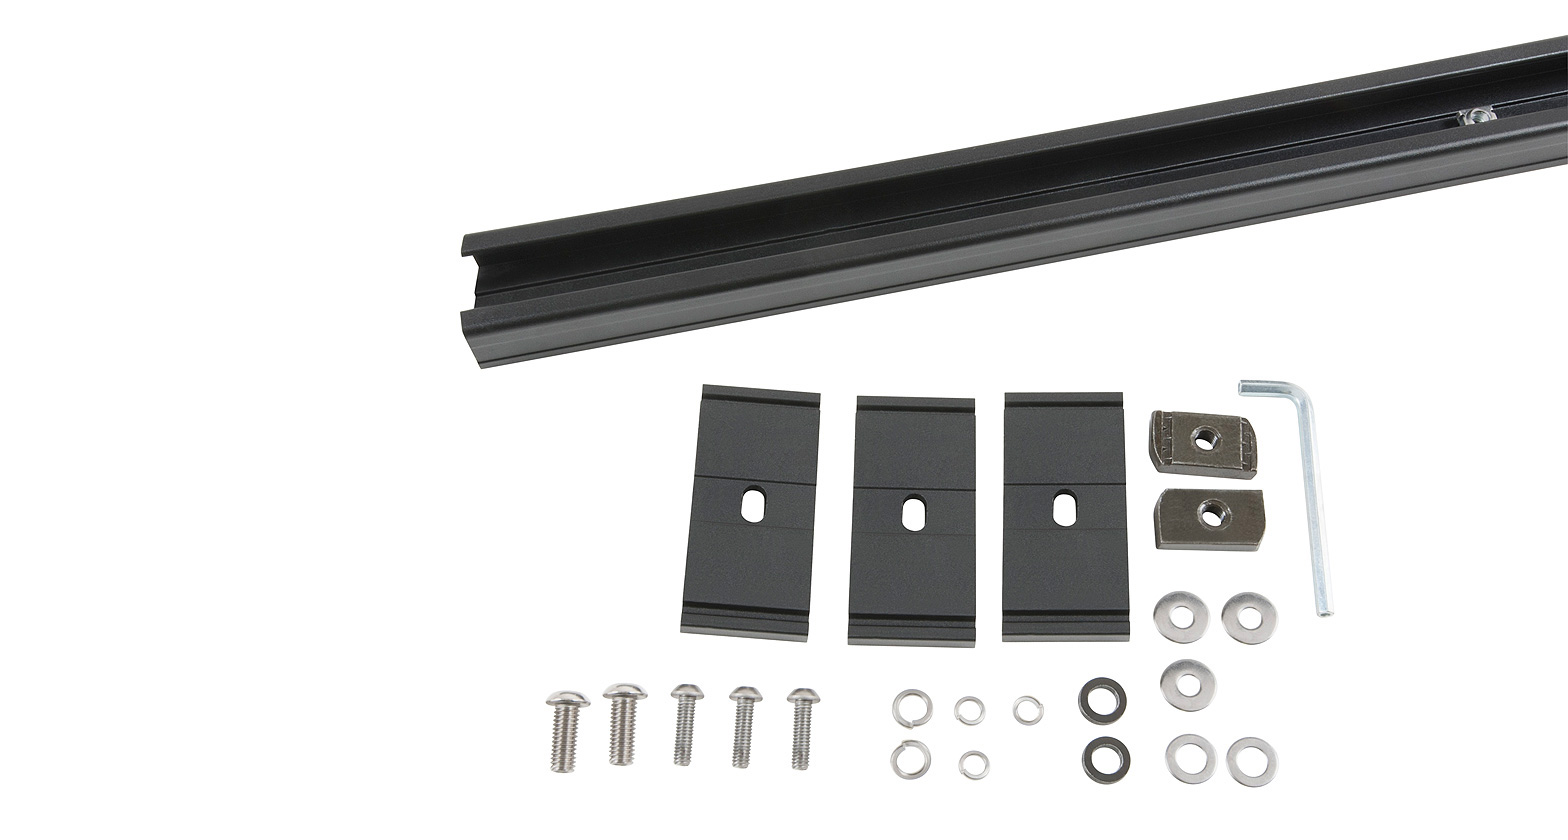 Pioneer Underside Bar (1192.5mm) (With Plastic Tabs)